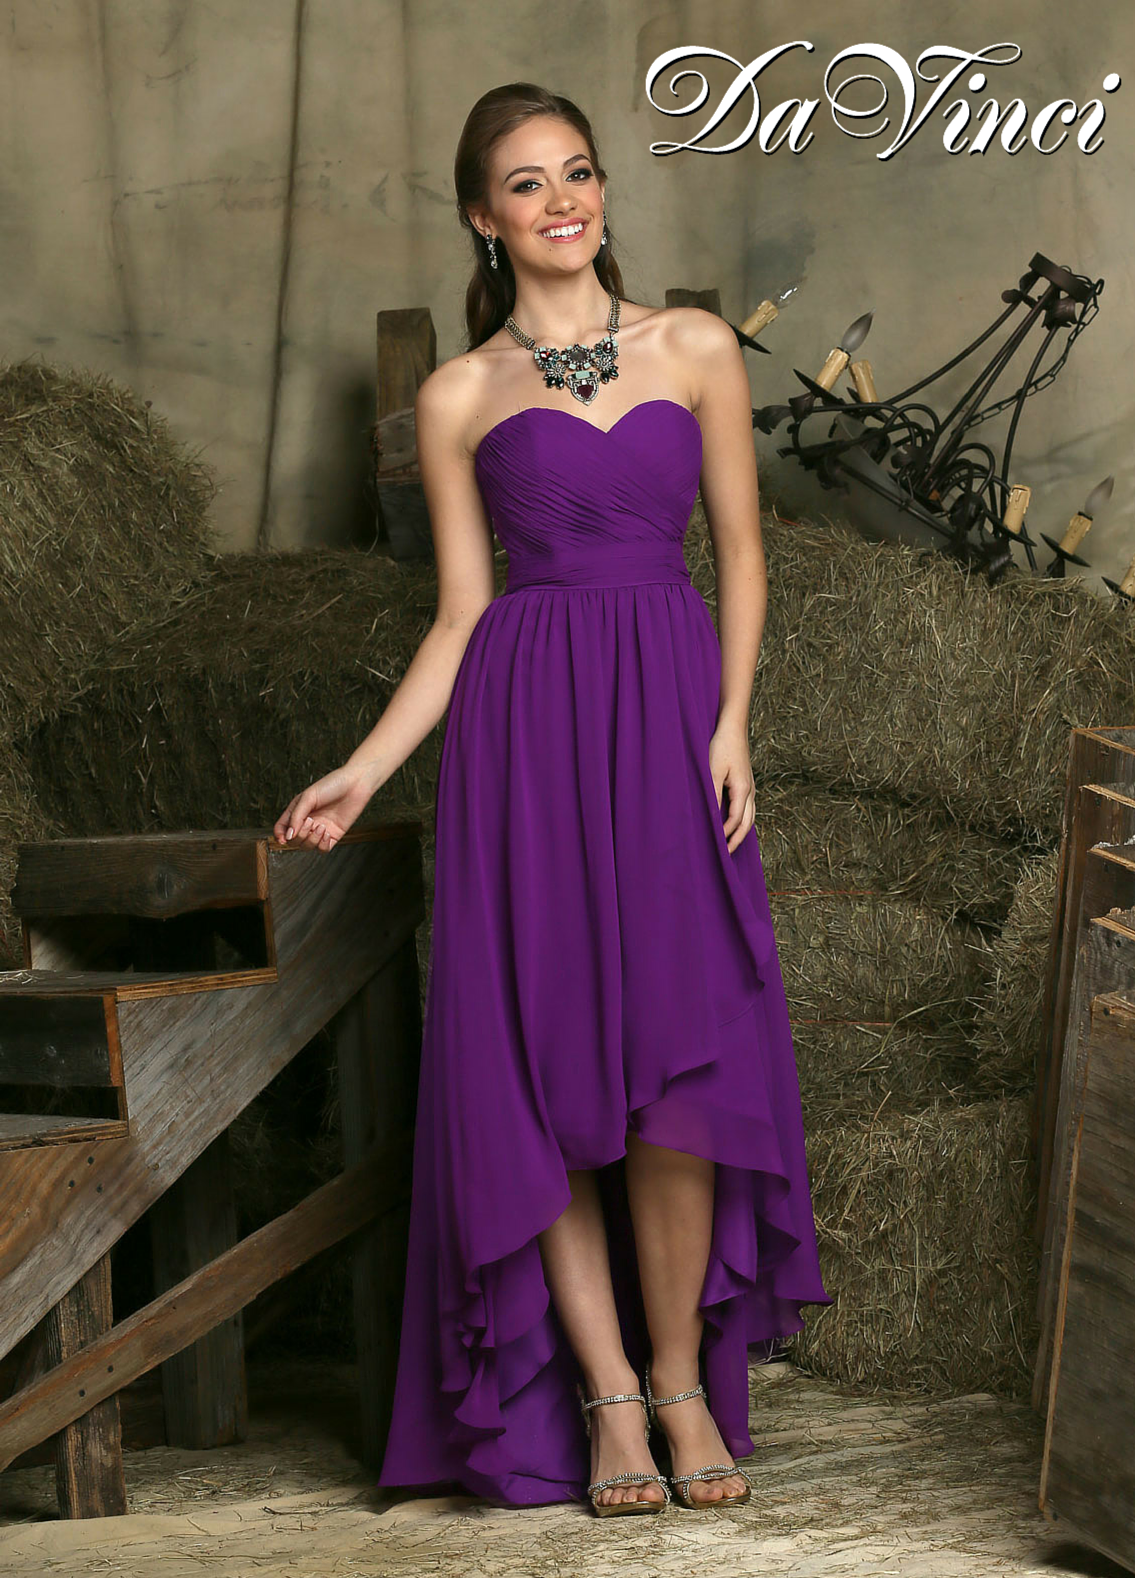 Choose fall 2015 davinci bridesmaid style 60224 for bridesmaids choose fall 2015 davinci bridesmaid style 60224 for bridesmaids and matrons of all shapes sizes ombrellifo Gallery